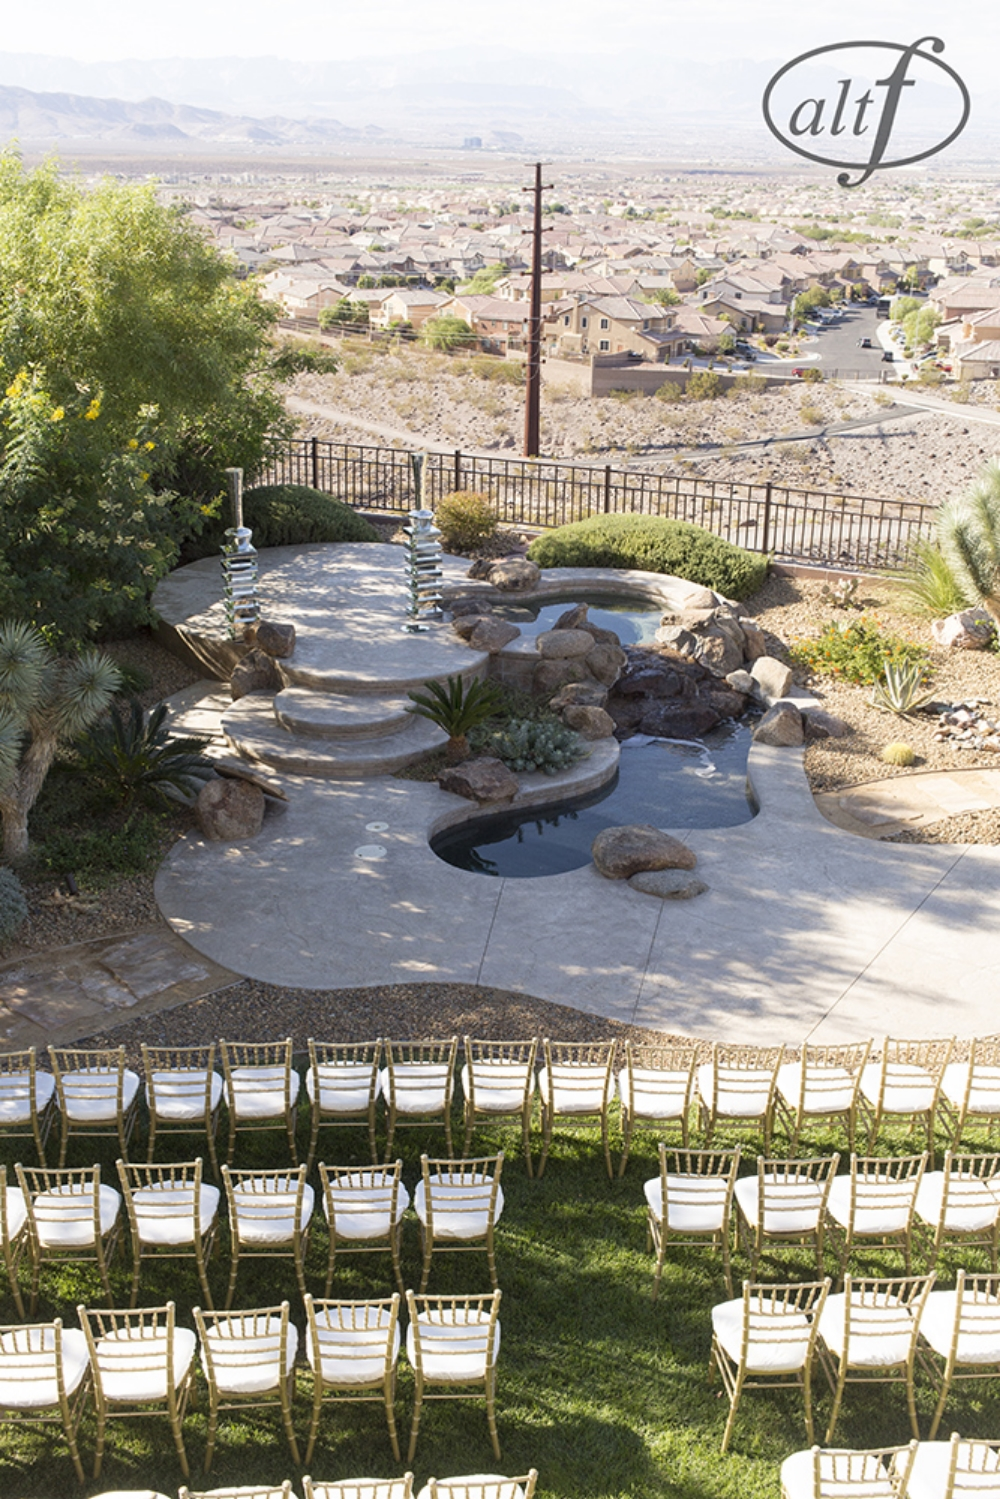 Set up in progress by Naakiti Floral. Las Vegas Wedding Planner Andrea Eppolito. Image by Altf.com.